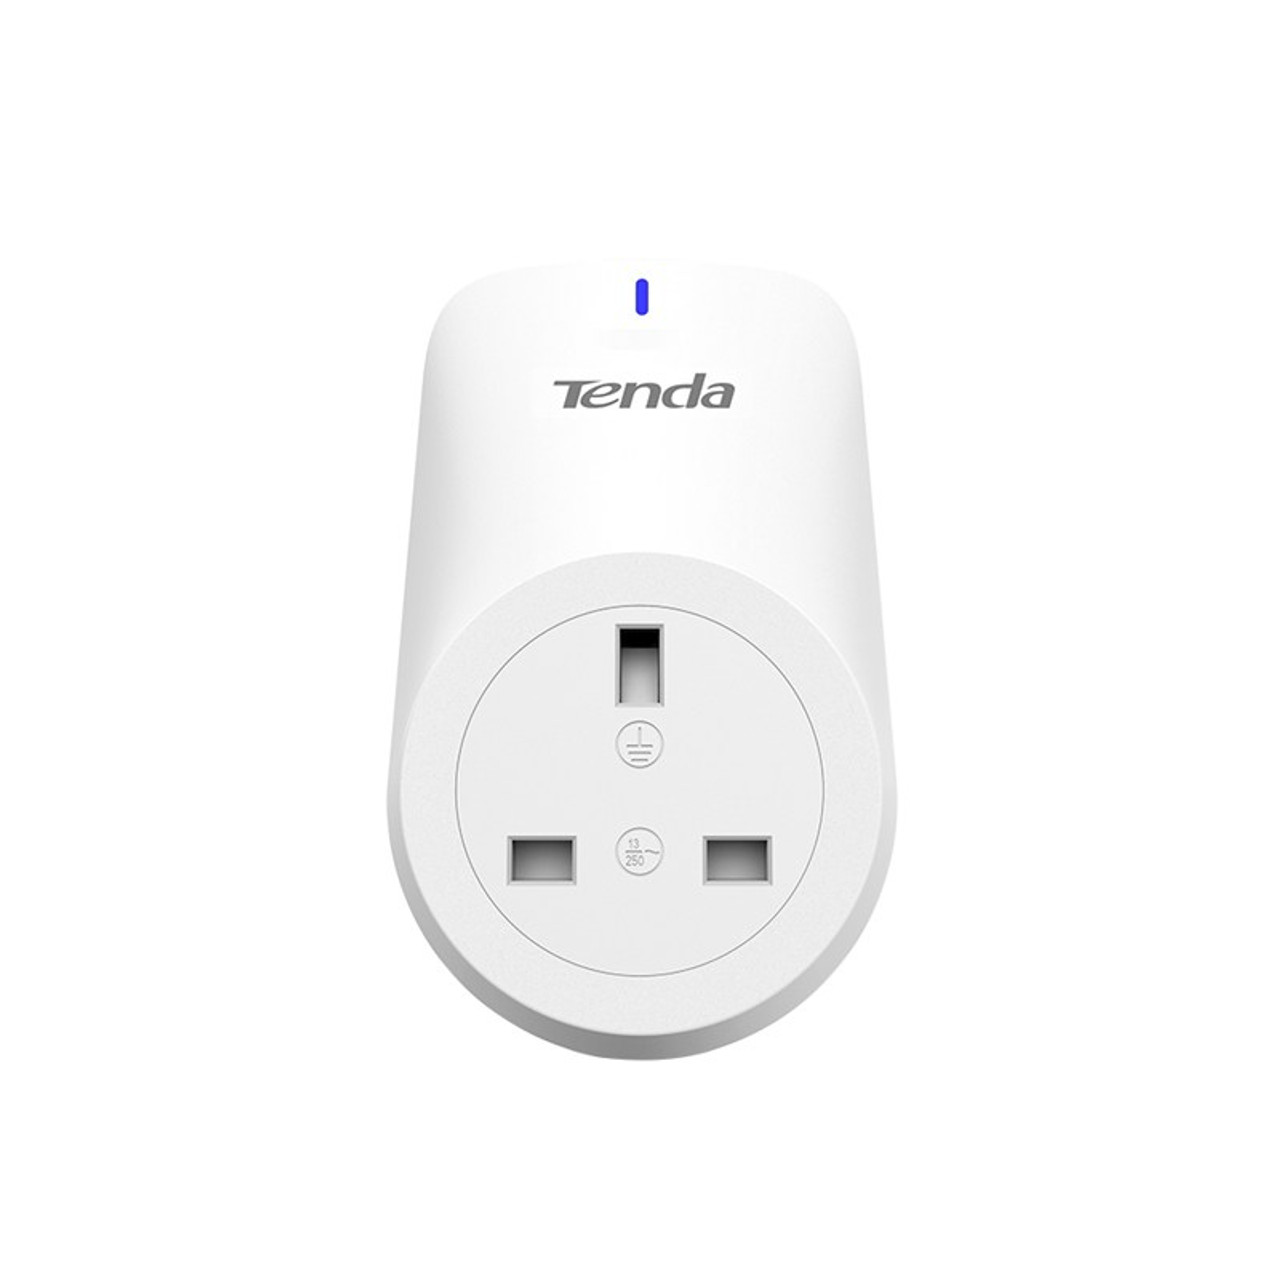 Tenda SP6 Smart Wi-Fi Plug, Control your Devices from Anywhere